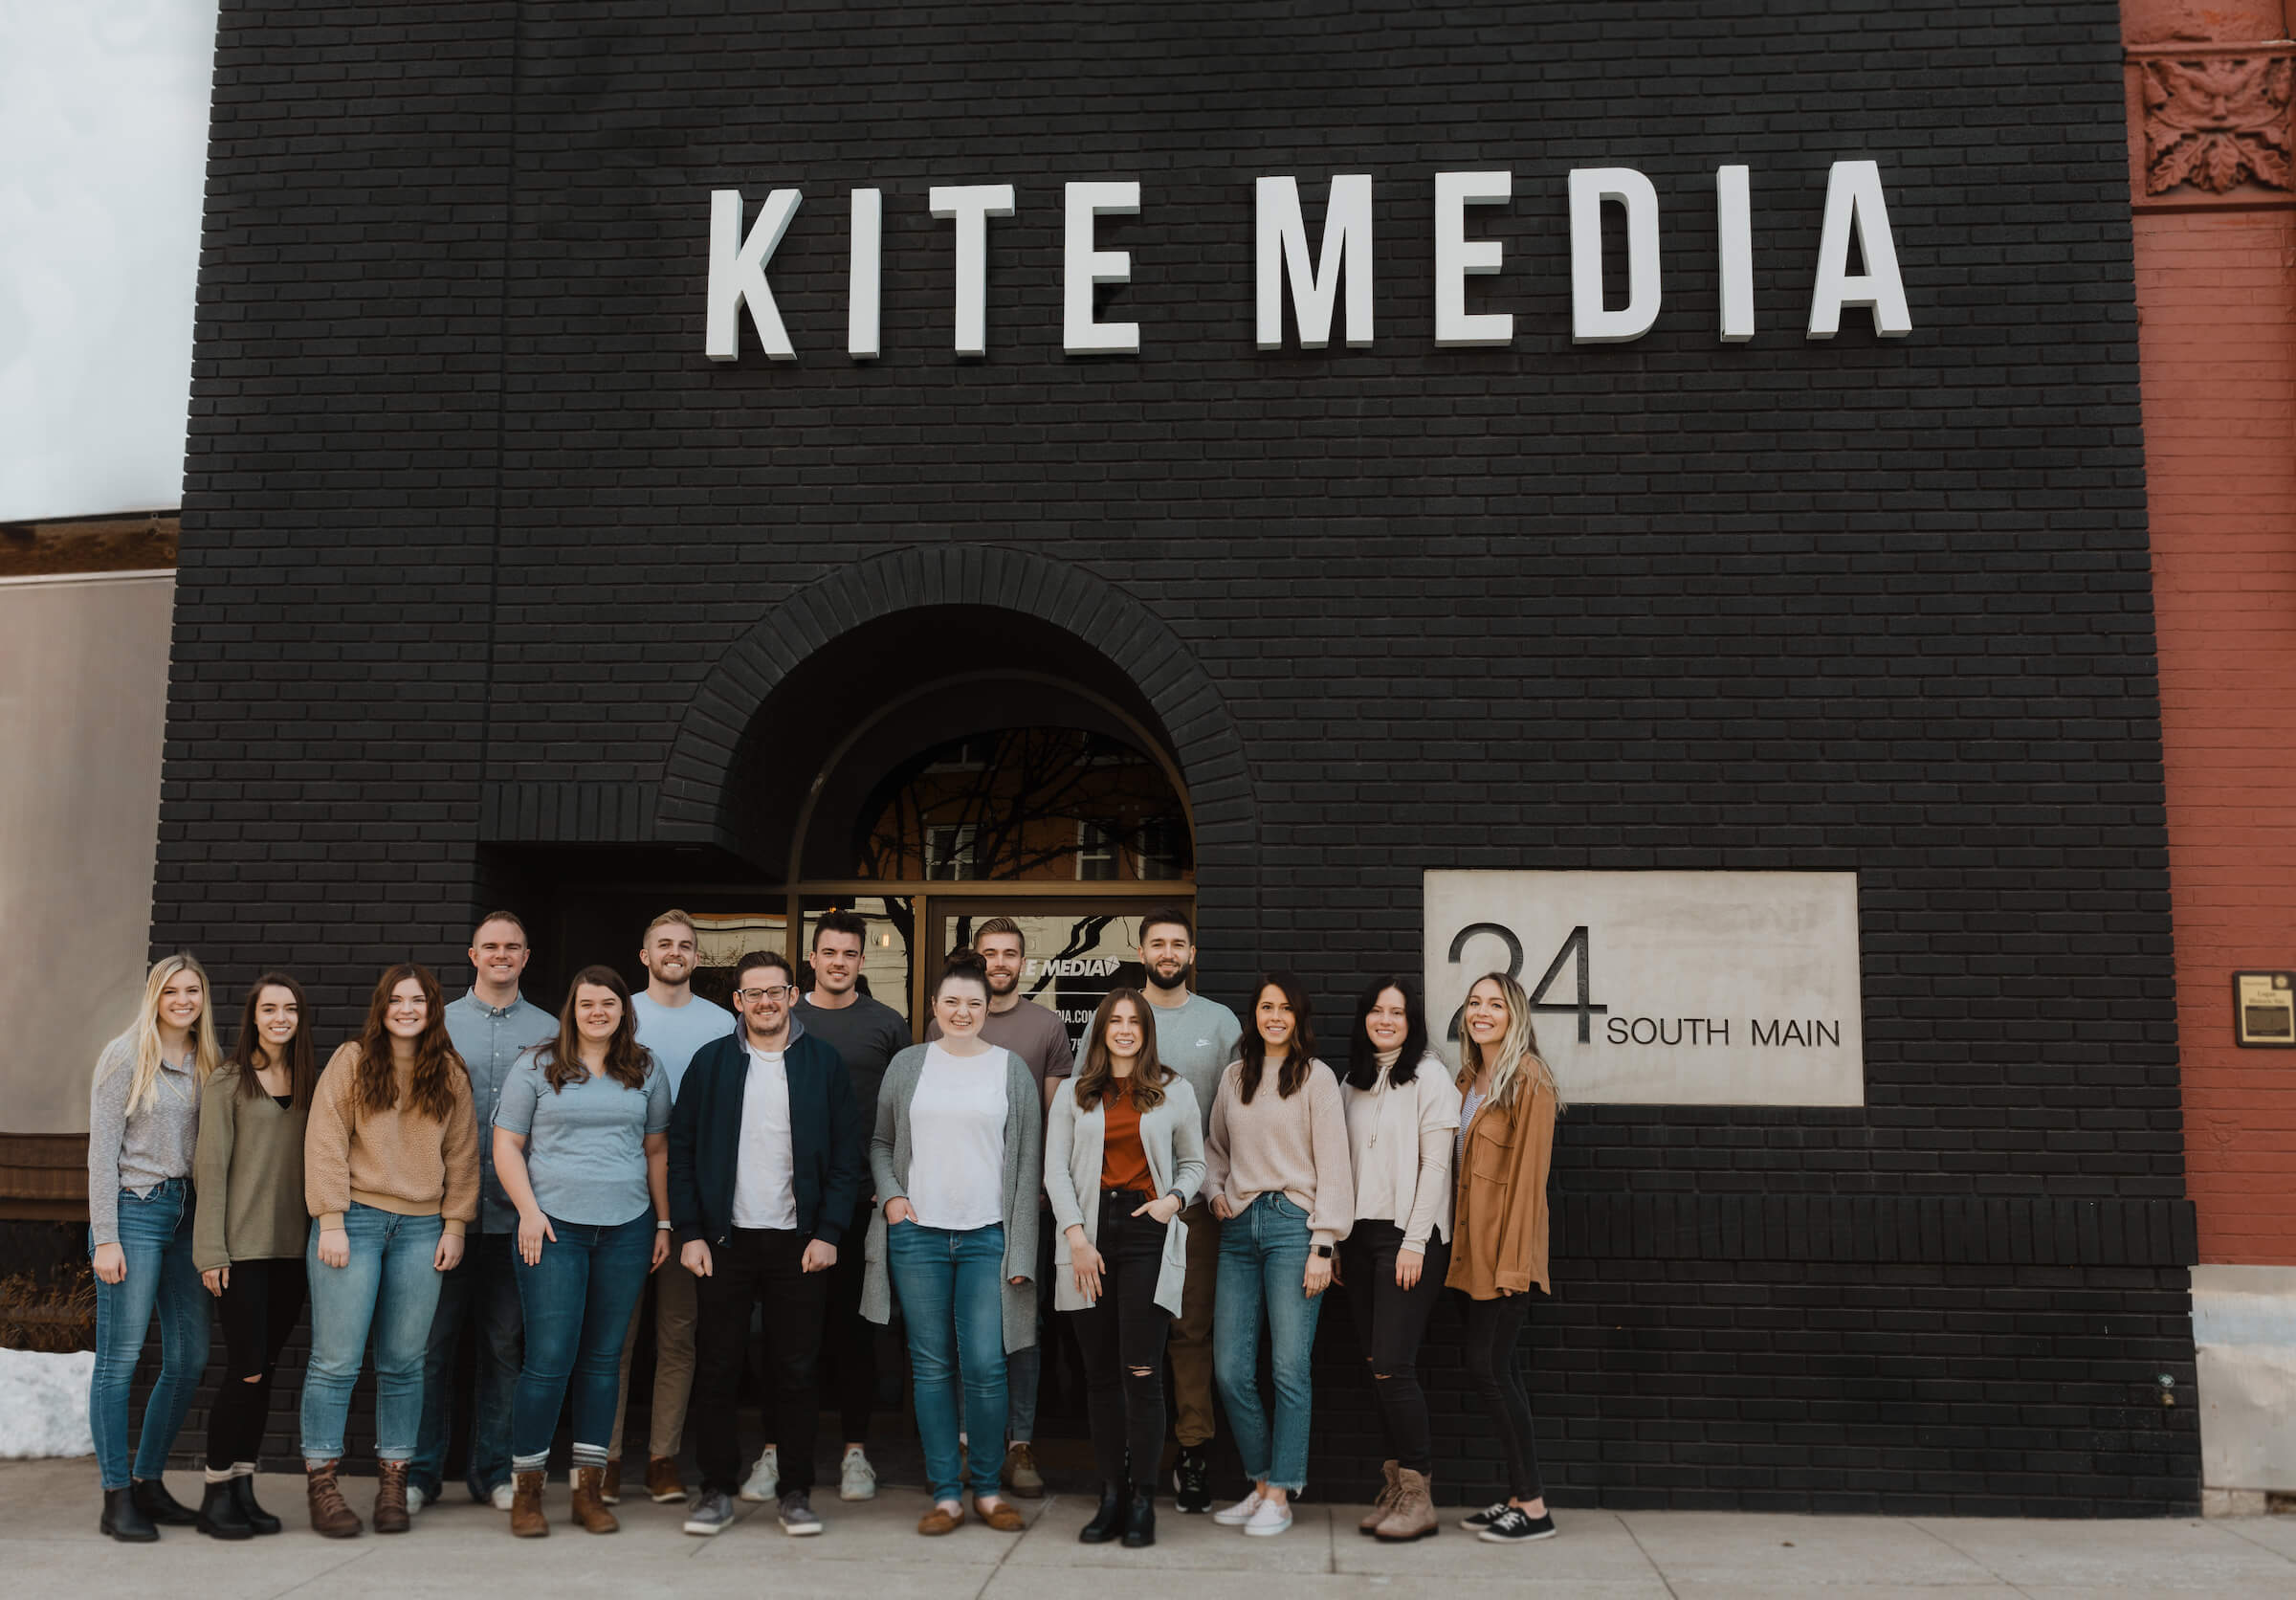 kite media team standing in front of office building